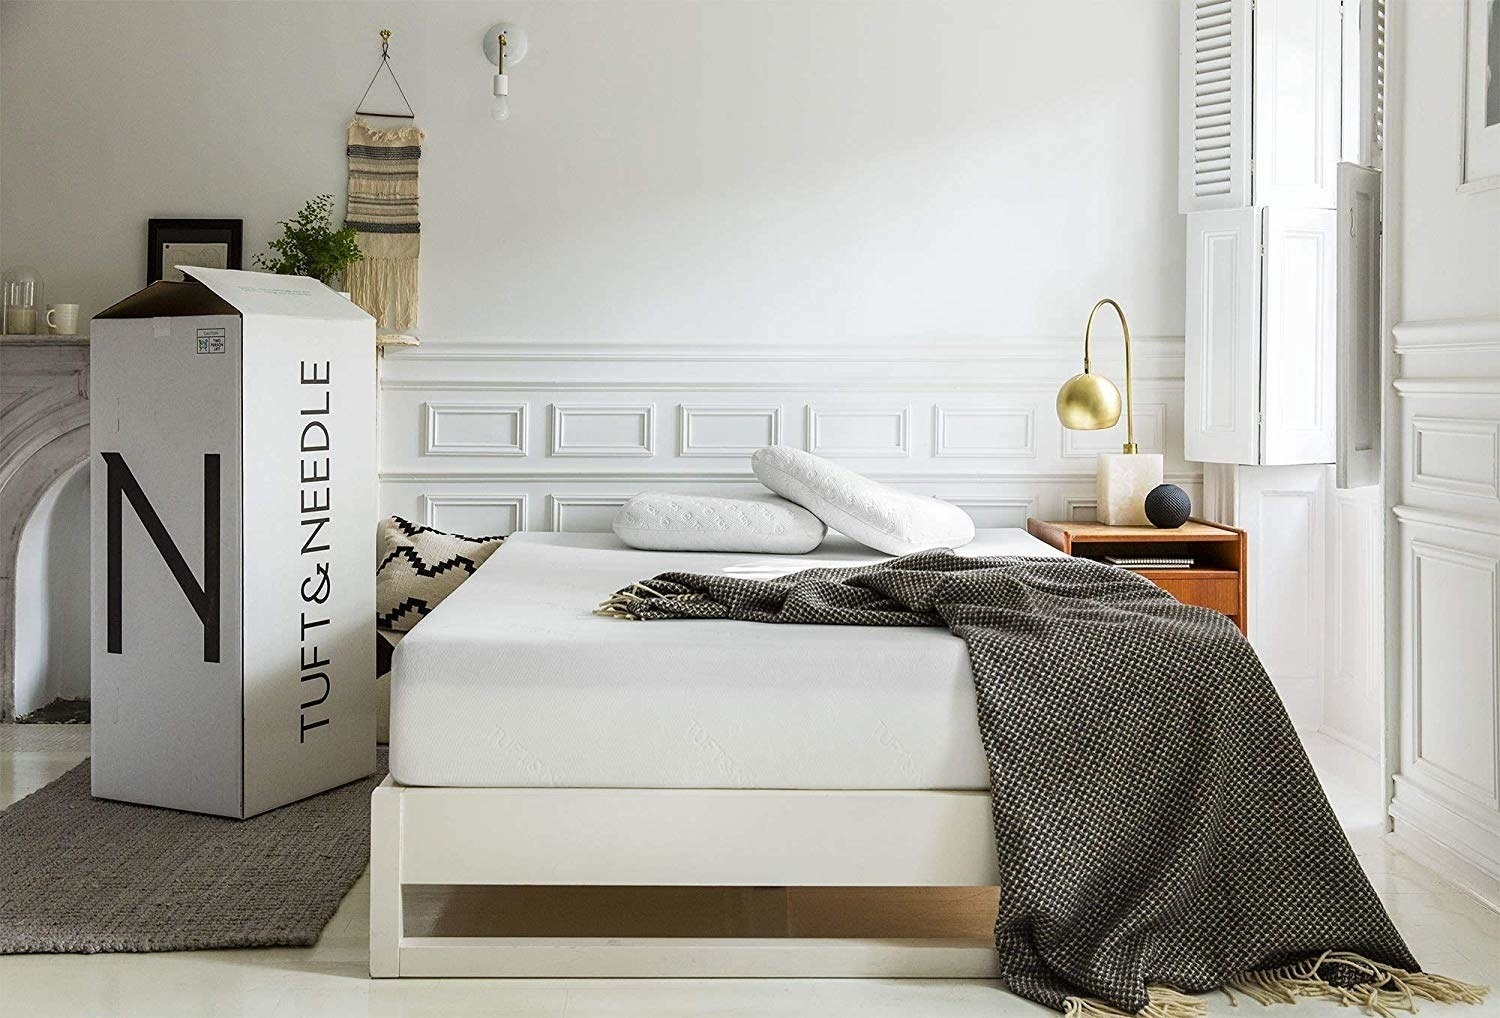 The mattress staged in a room, showing the box it ships in